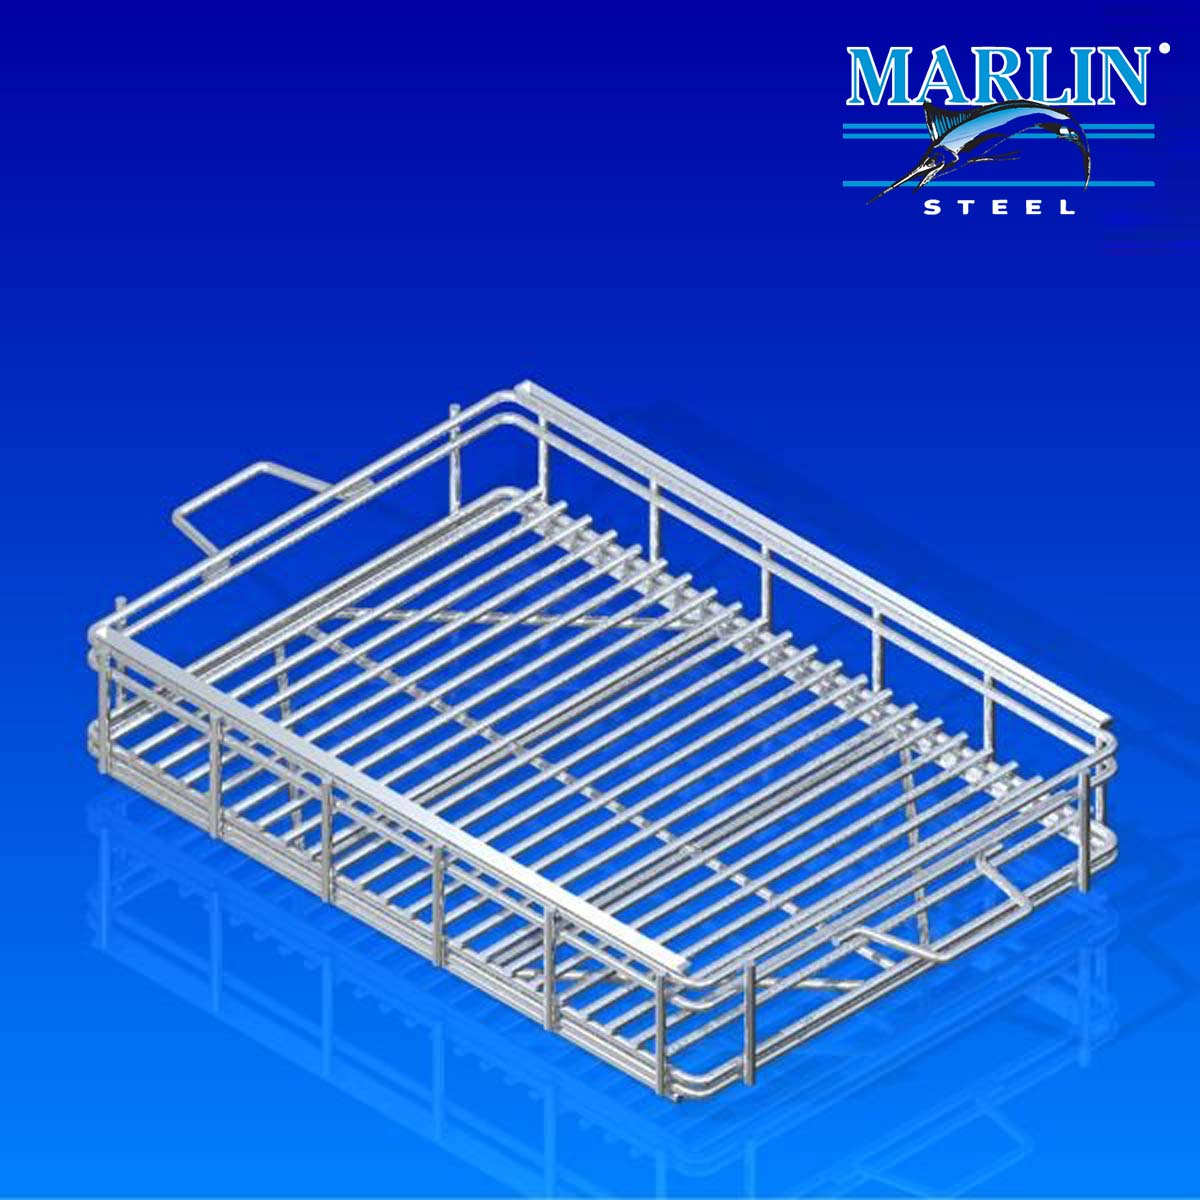 Marlin Steel Wire Basket 960013